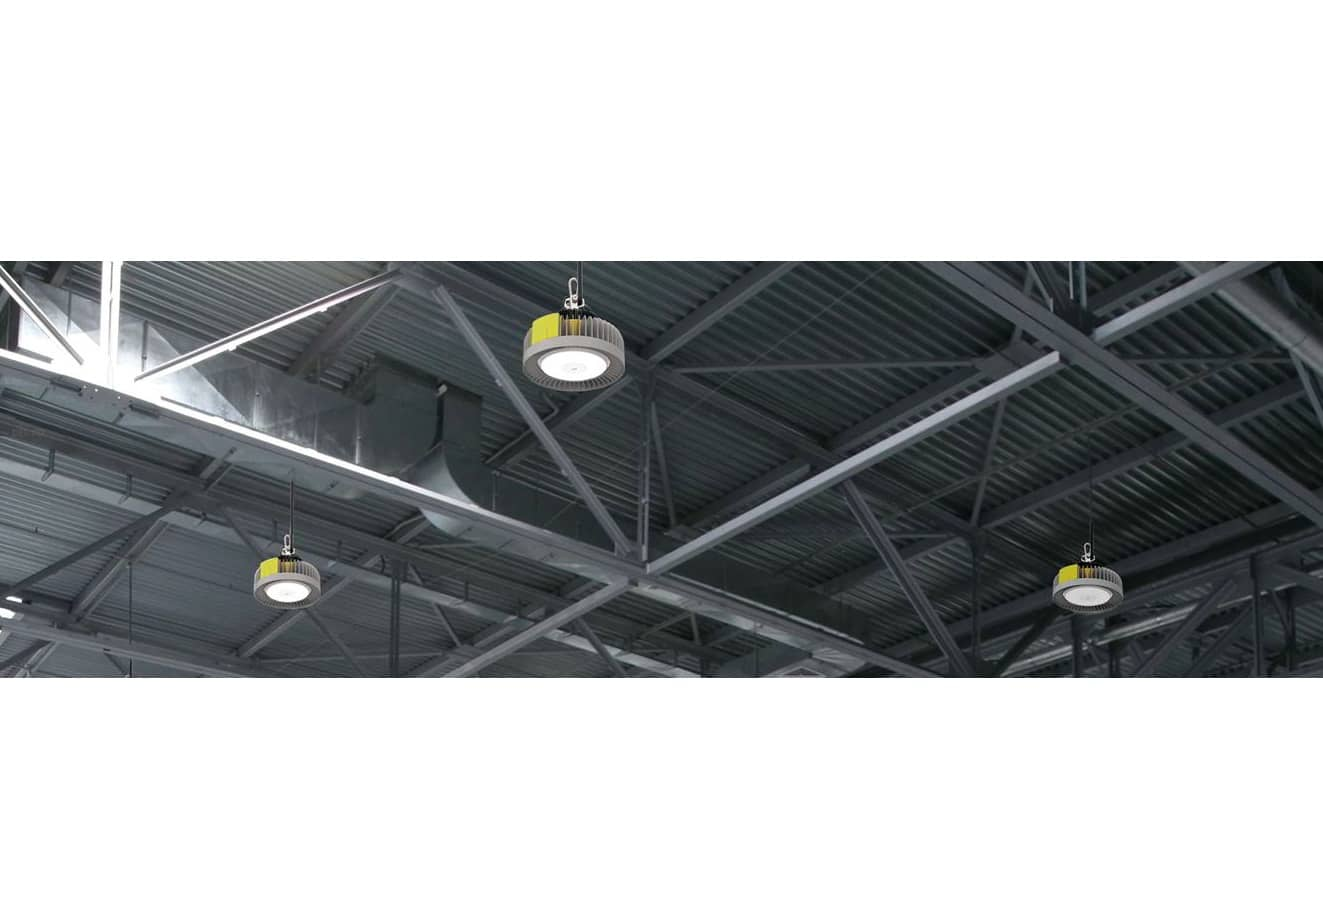 High Bay Lampen : Toshiba led highbay w lm k ° v hallenleuchte